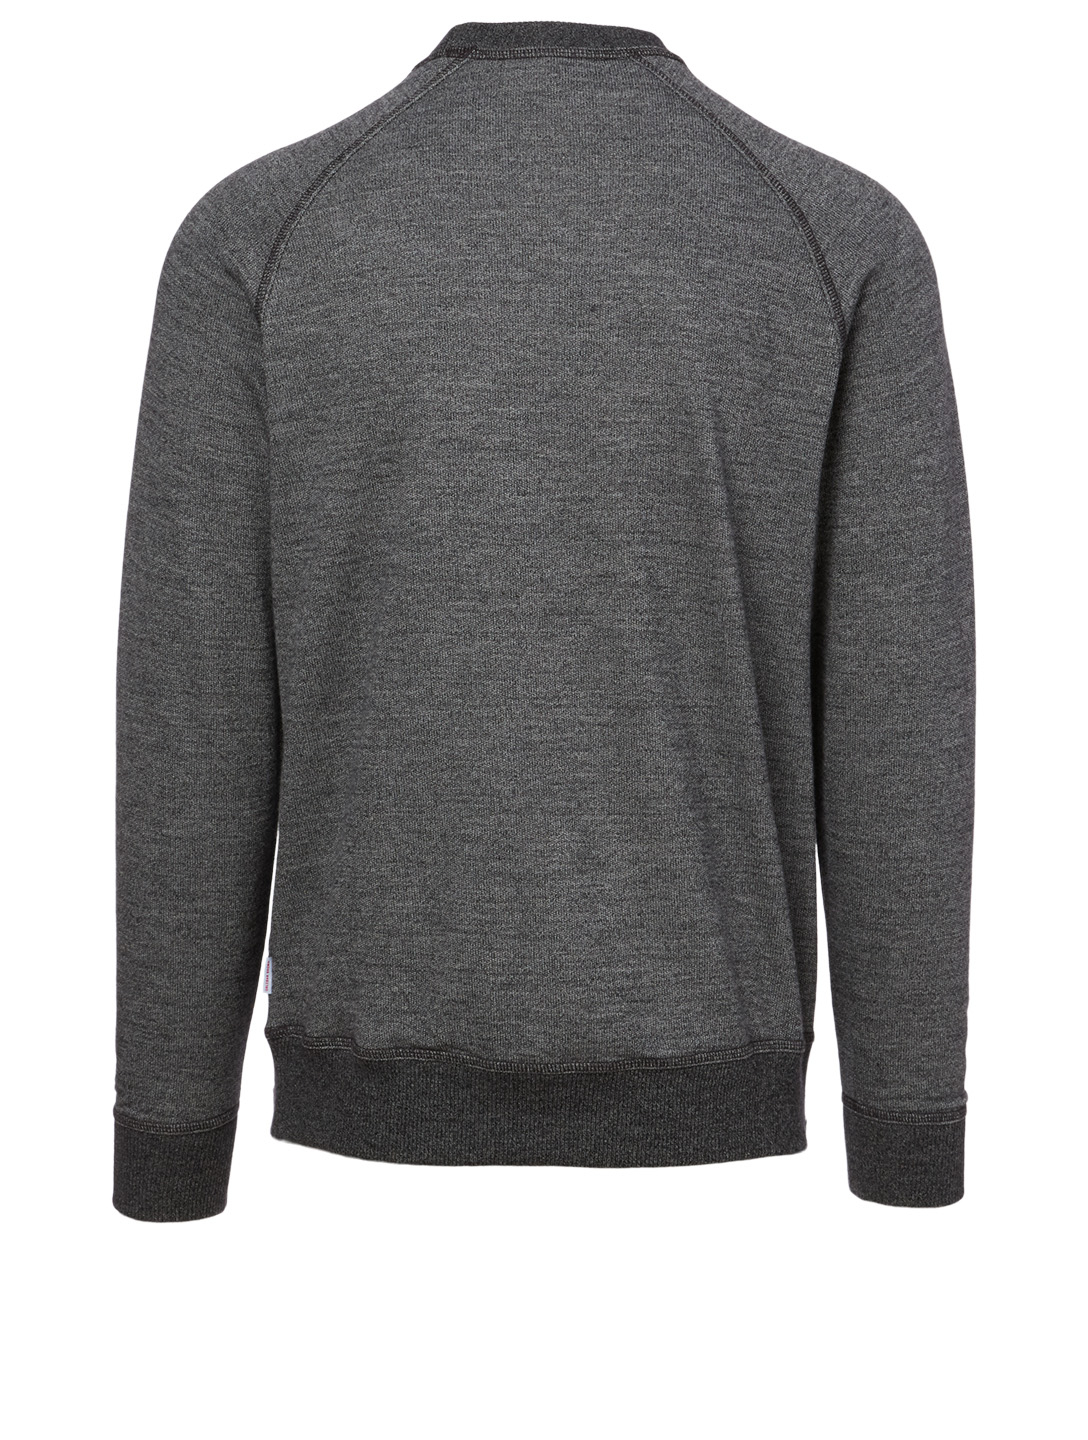 ORLEBAR BROWN Bryan Cotton And Wool Sweatshirt Men's Grey